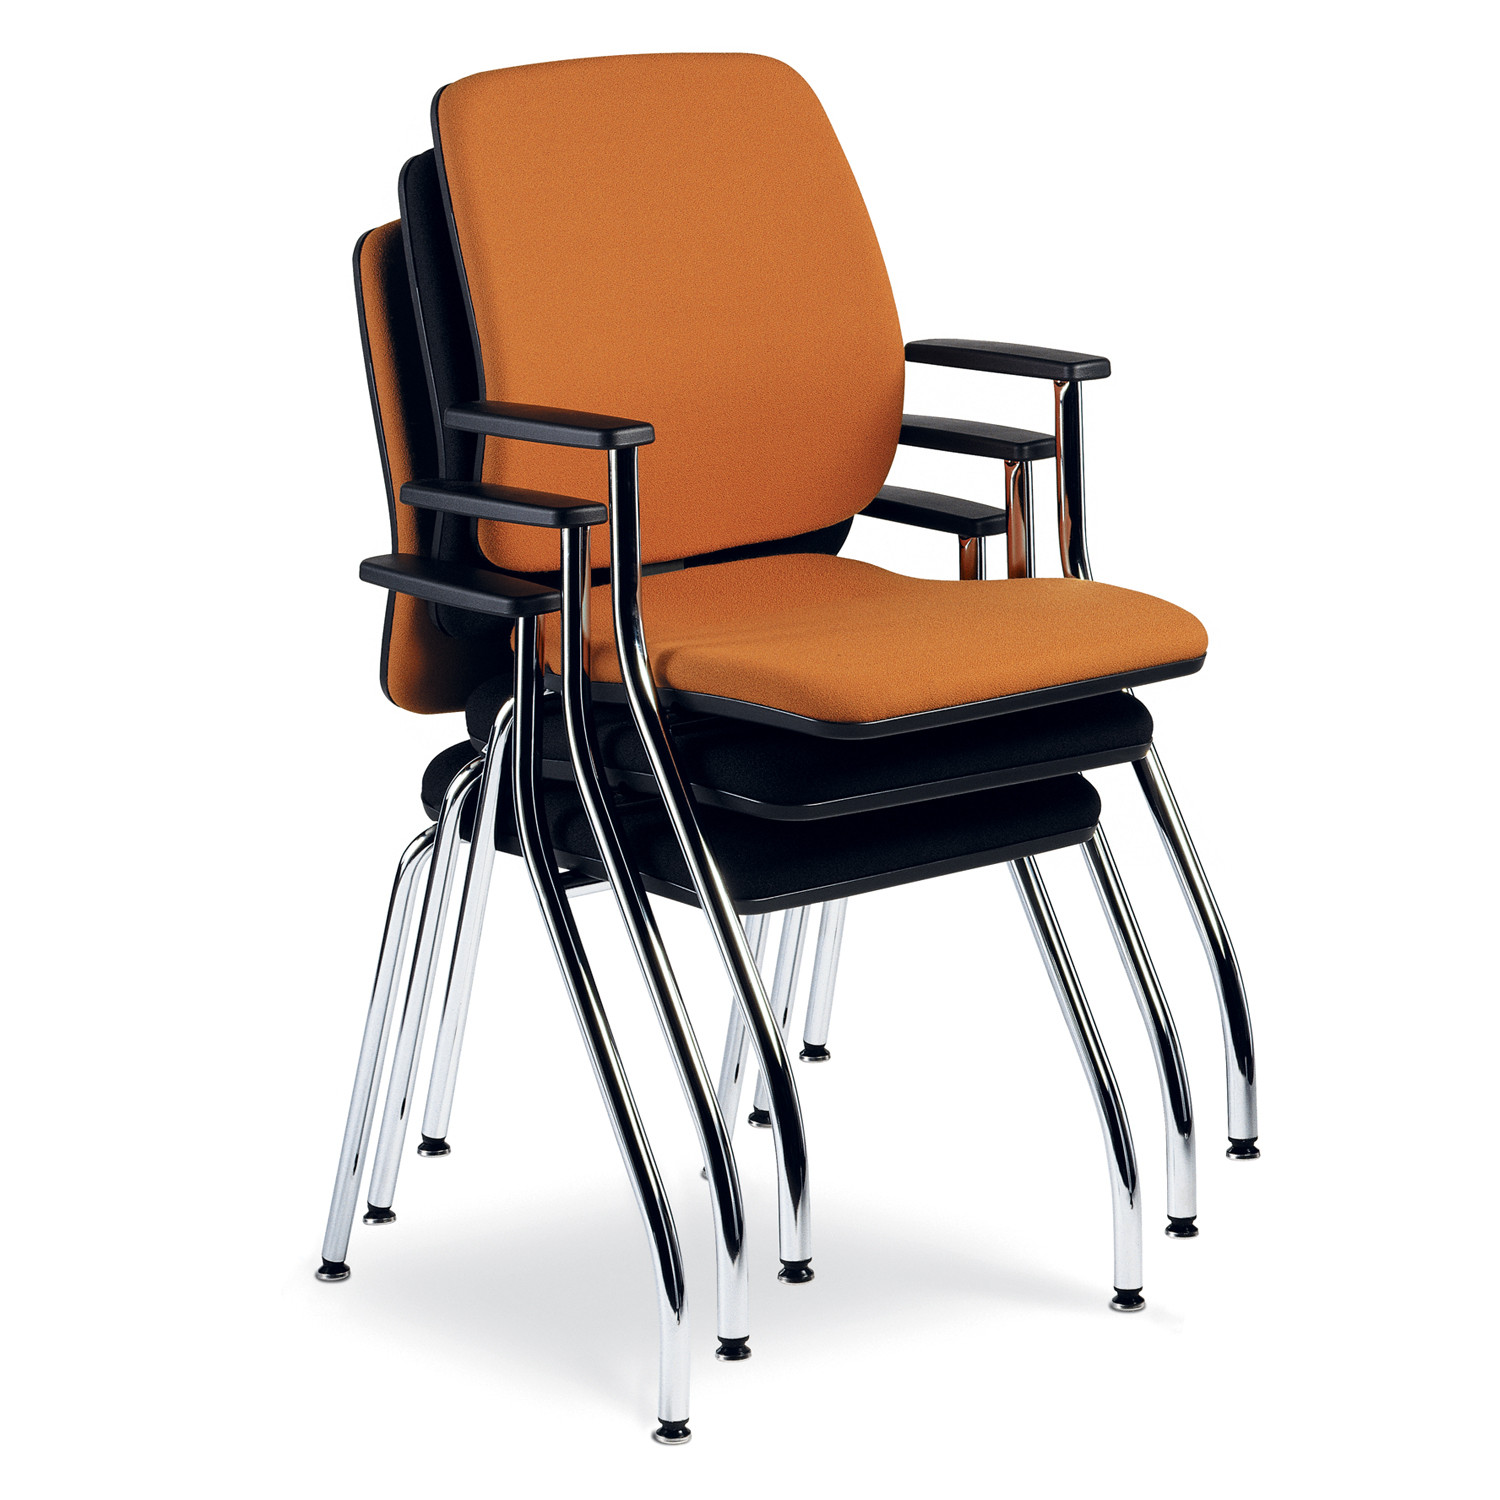 Early Bird Stackable 4-leg Visitors Chairs